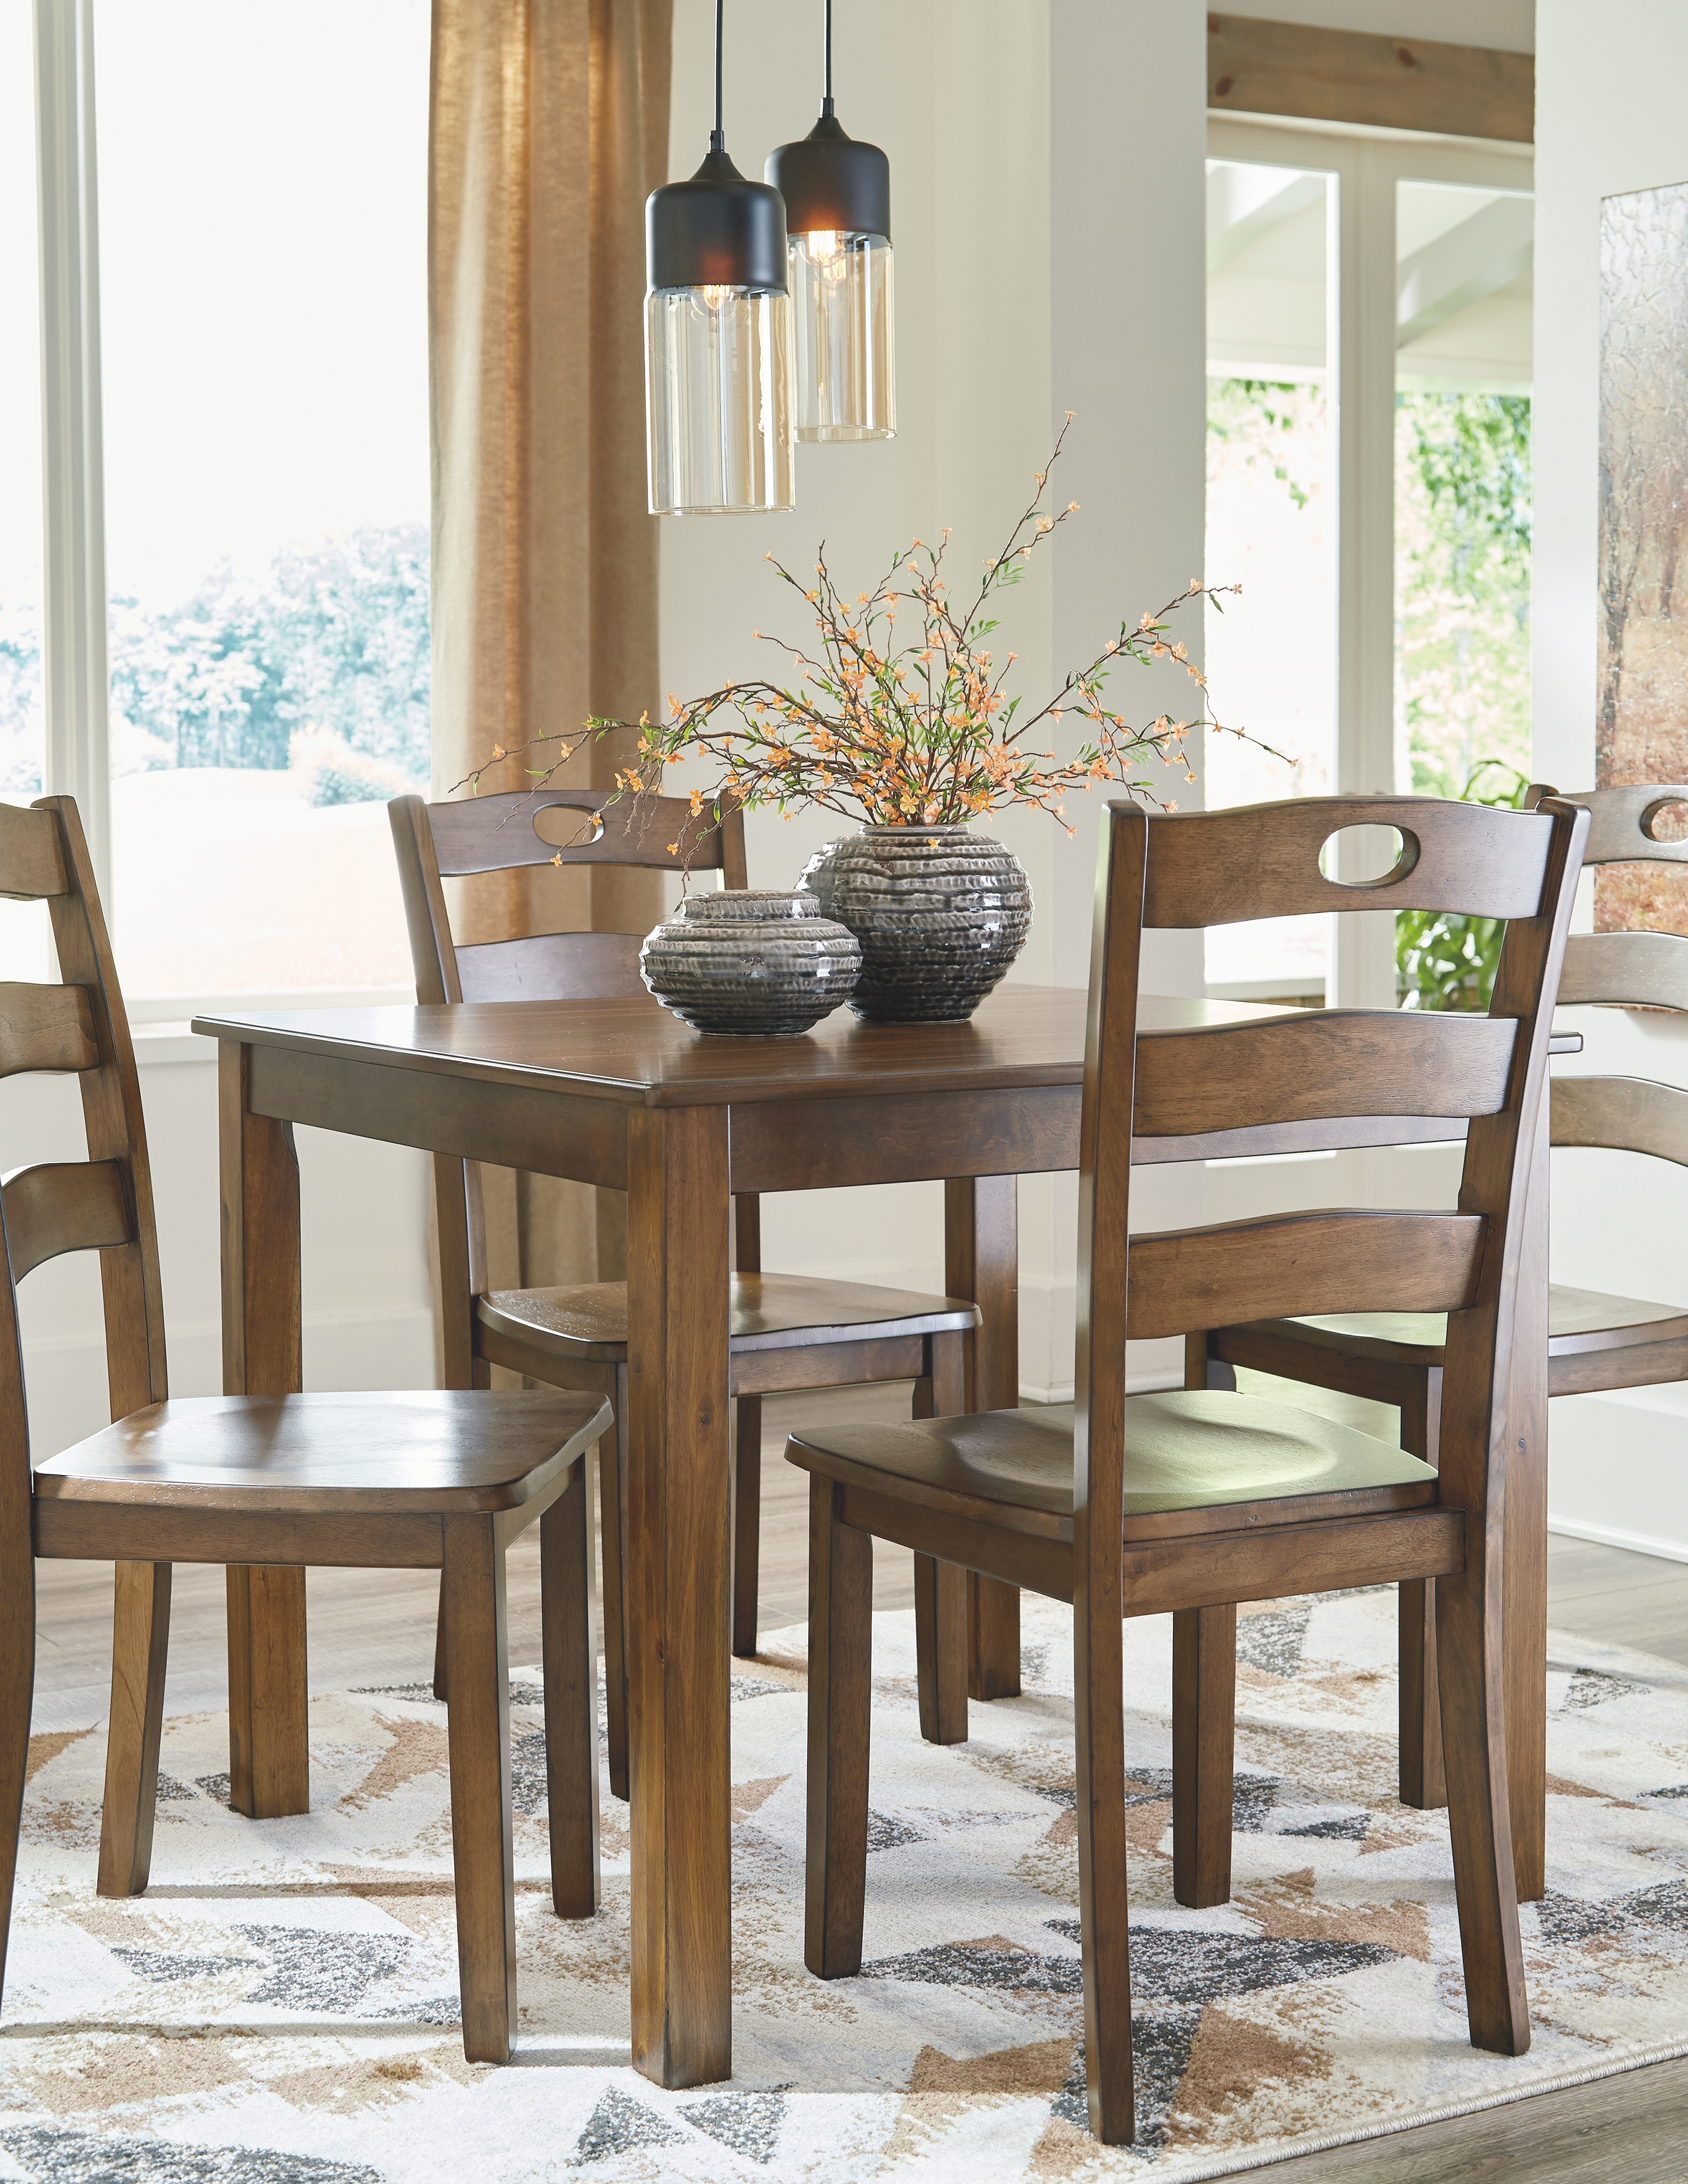 Hazelteen Dining Room Table And Chairs Set Of 5 By Signature Design By Ashley D419 225 Missouri Furniture